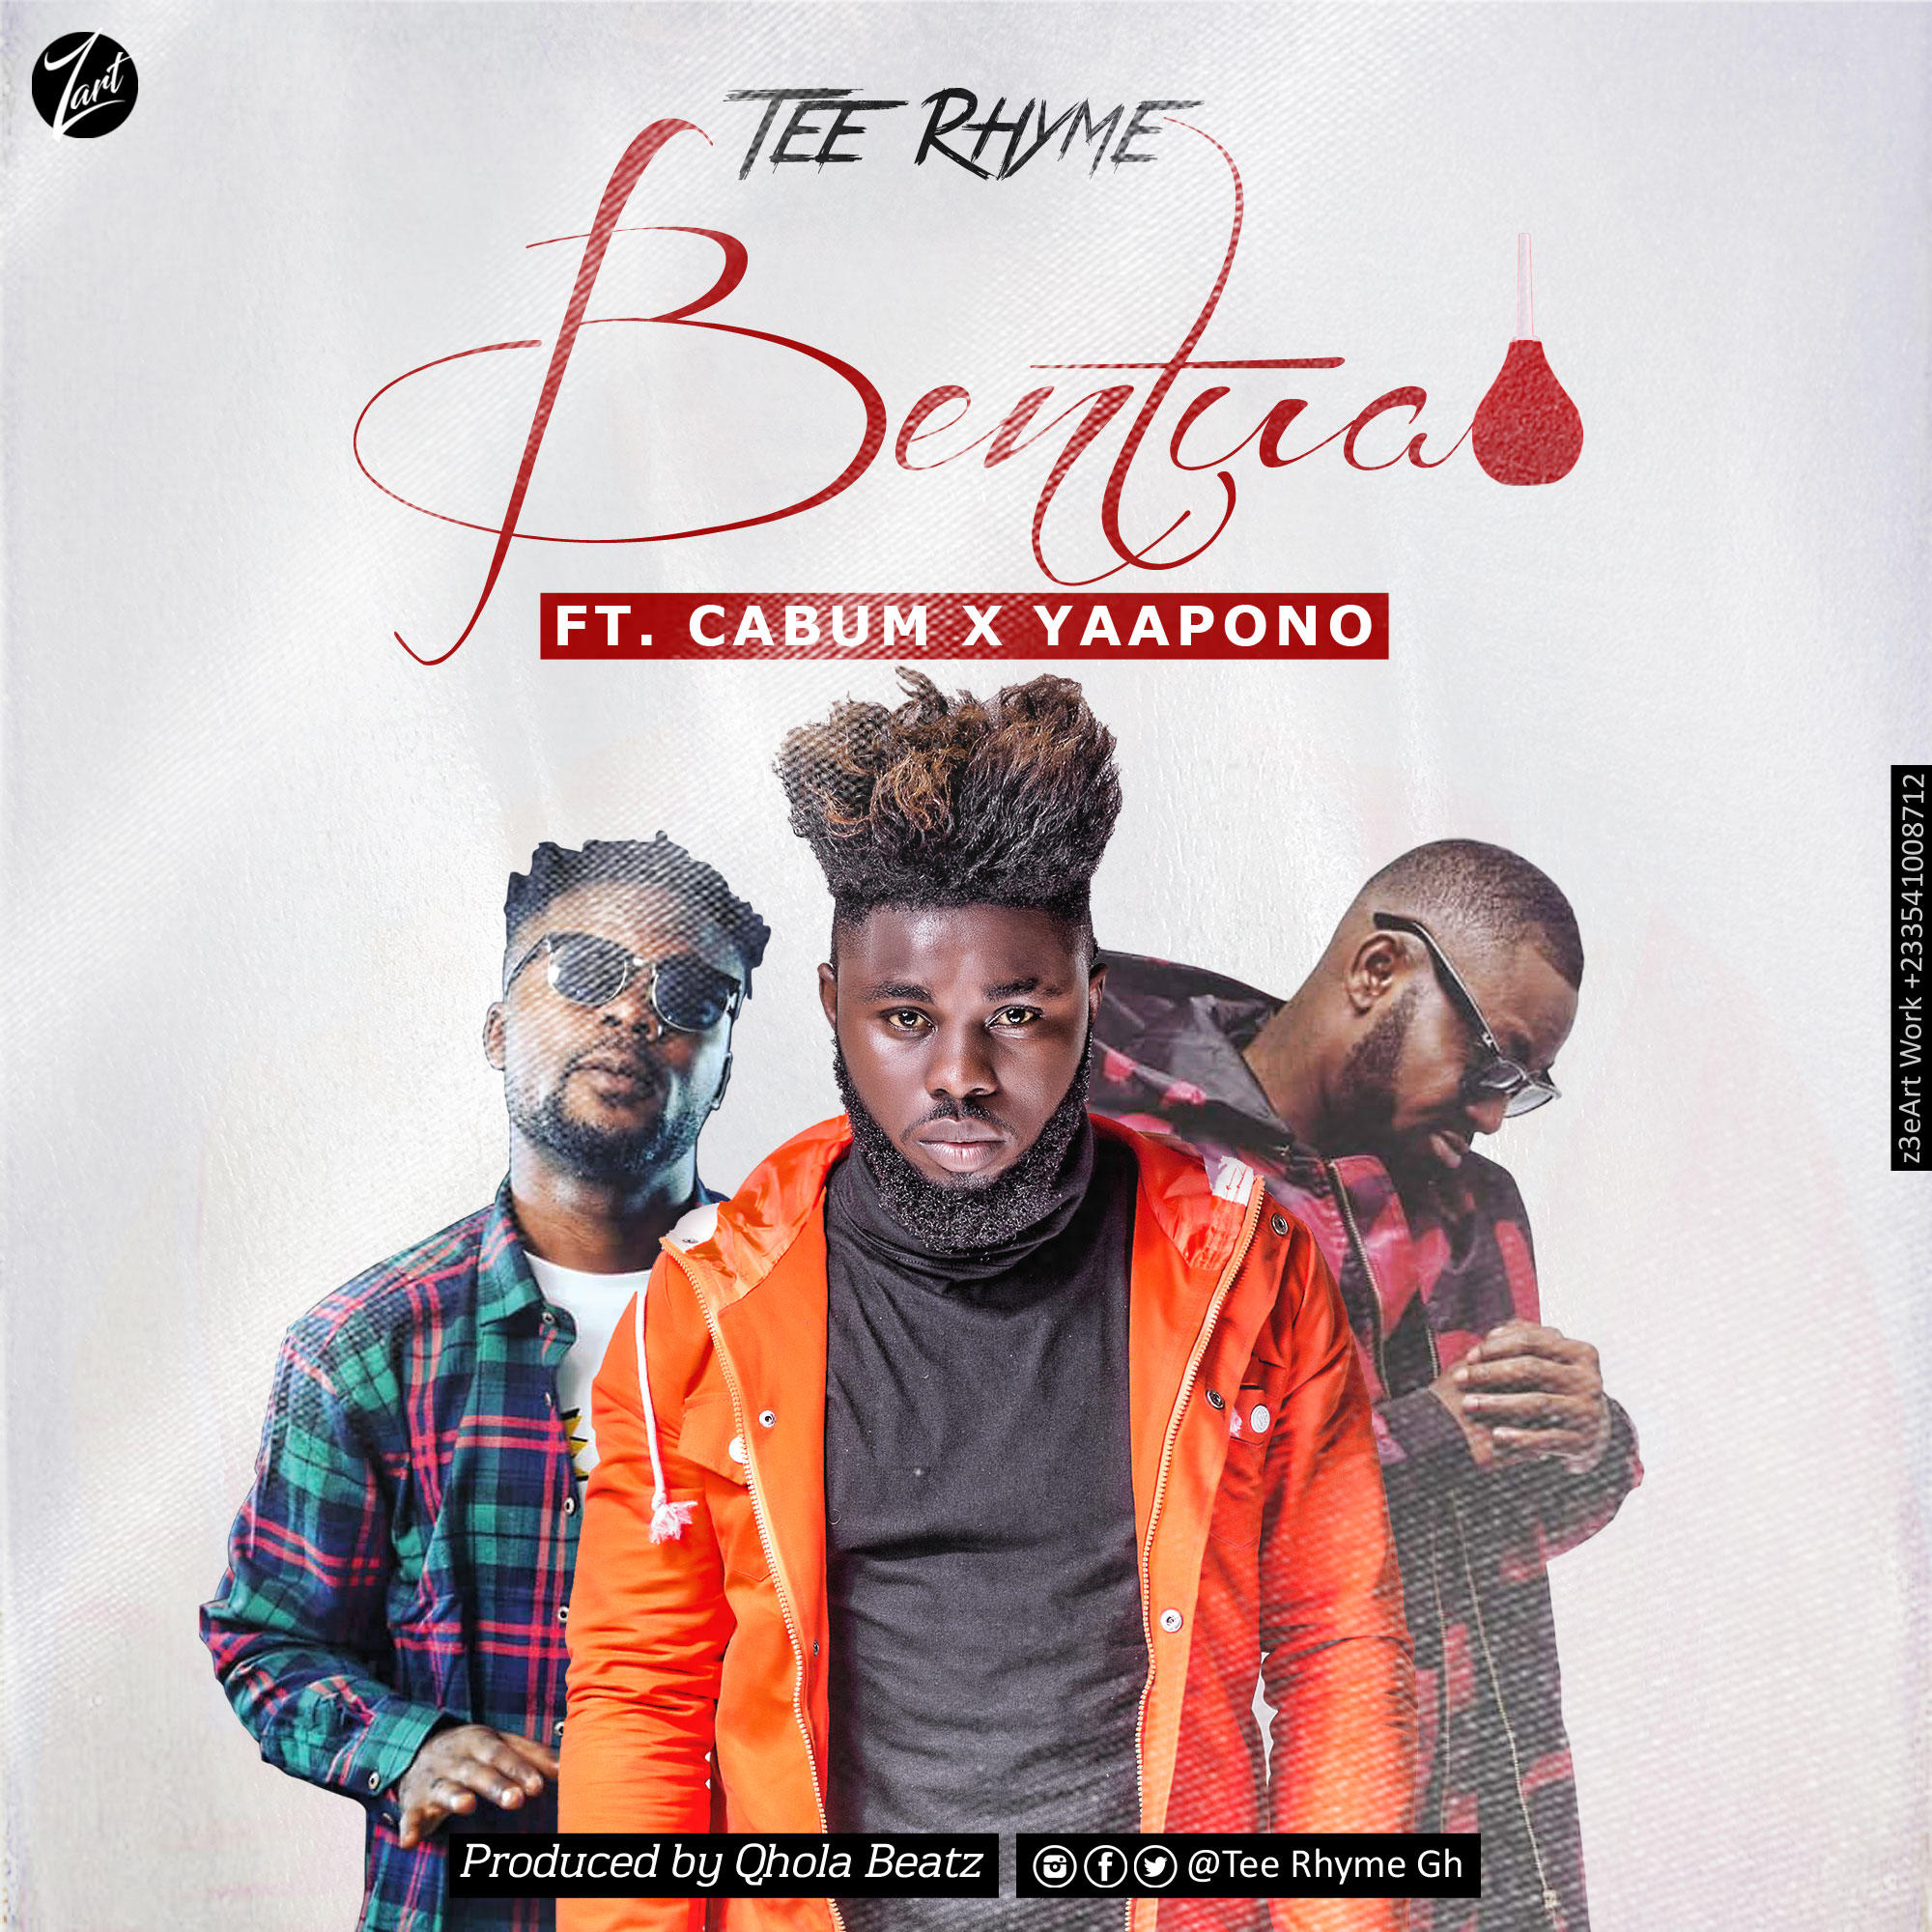 Tee Rhyme - Bentua Ft Cabum x Yaa Pono (Prod by Qhola Beatz)